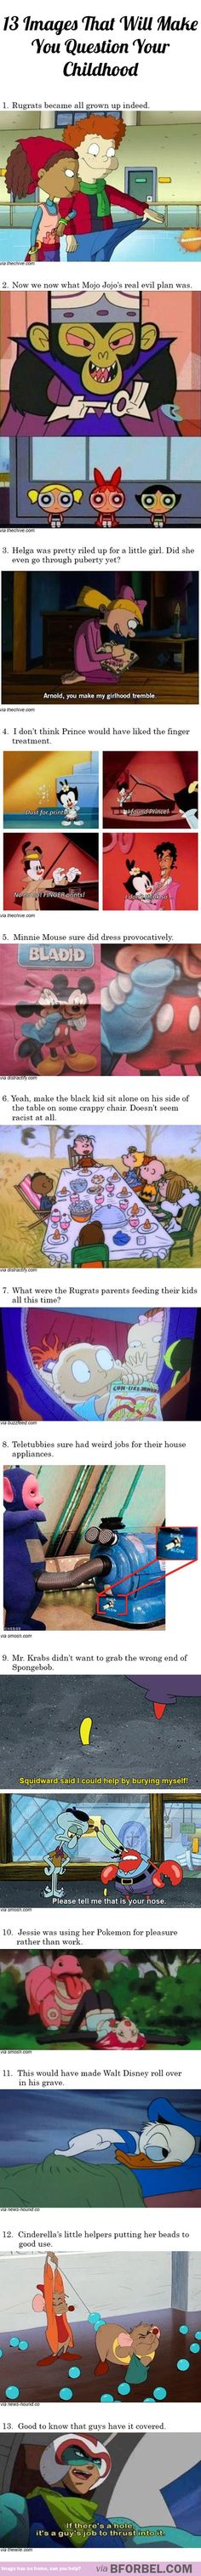 13 images that will make you question your childhood